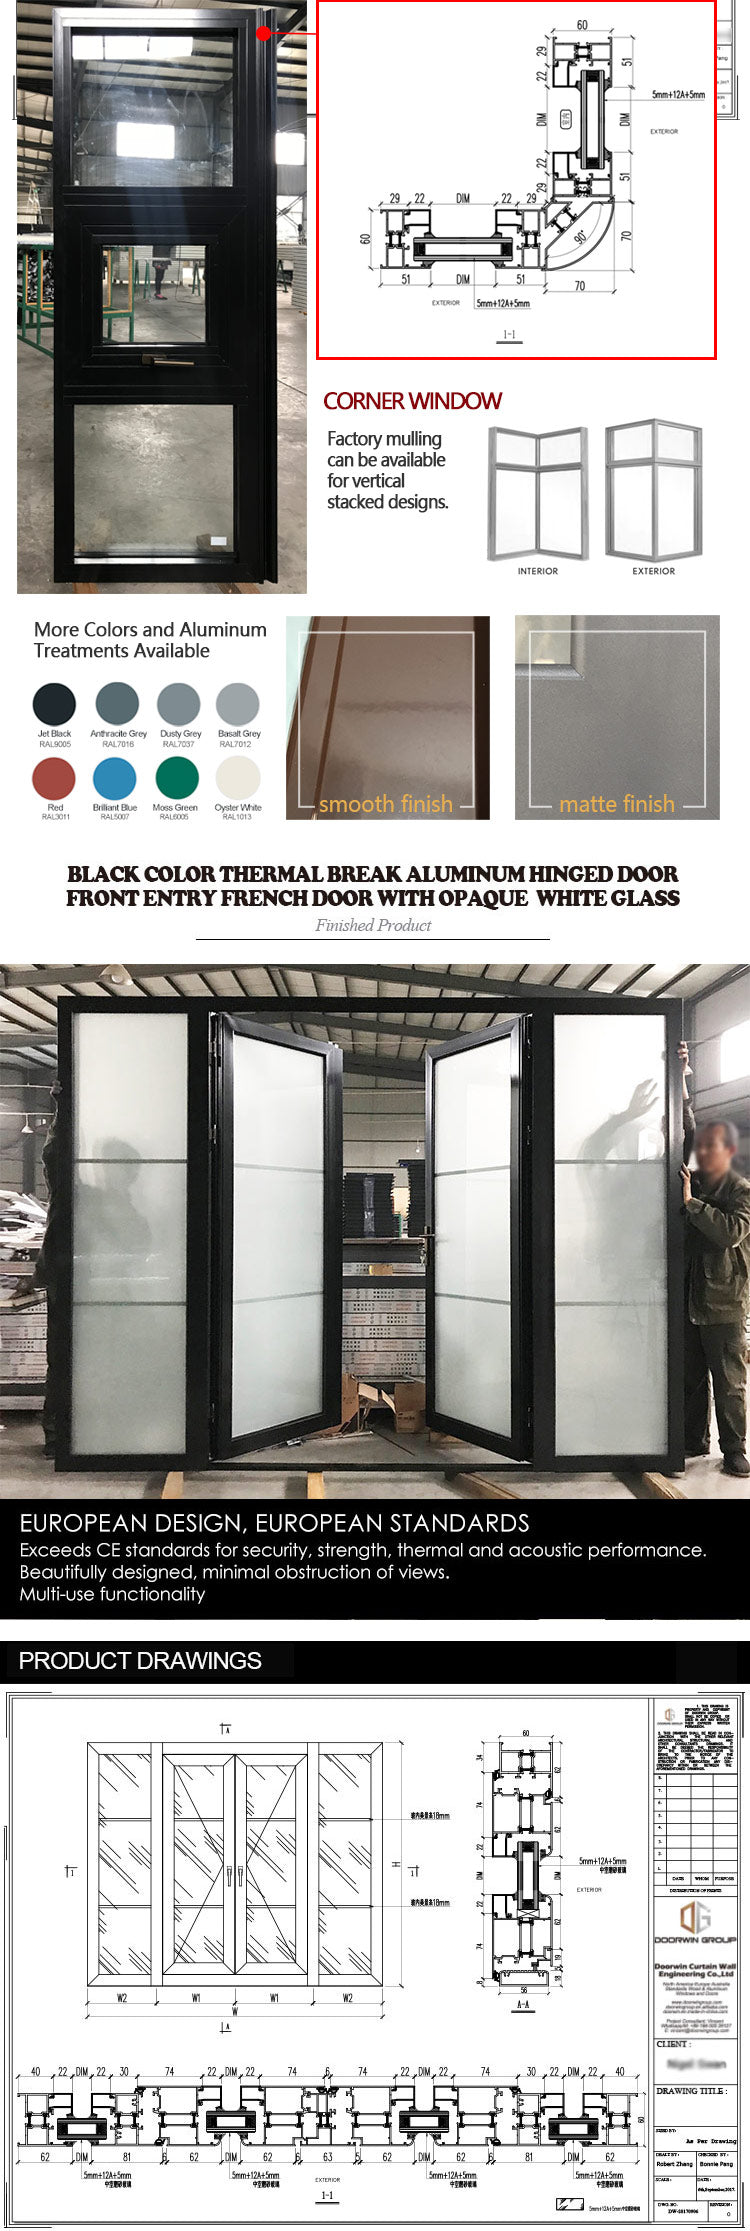 Black powder coating paint color thermal break aluminum awning